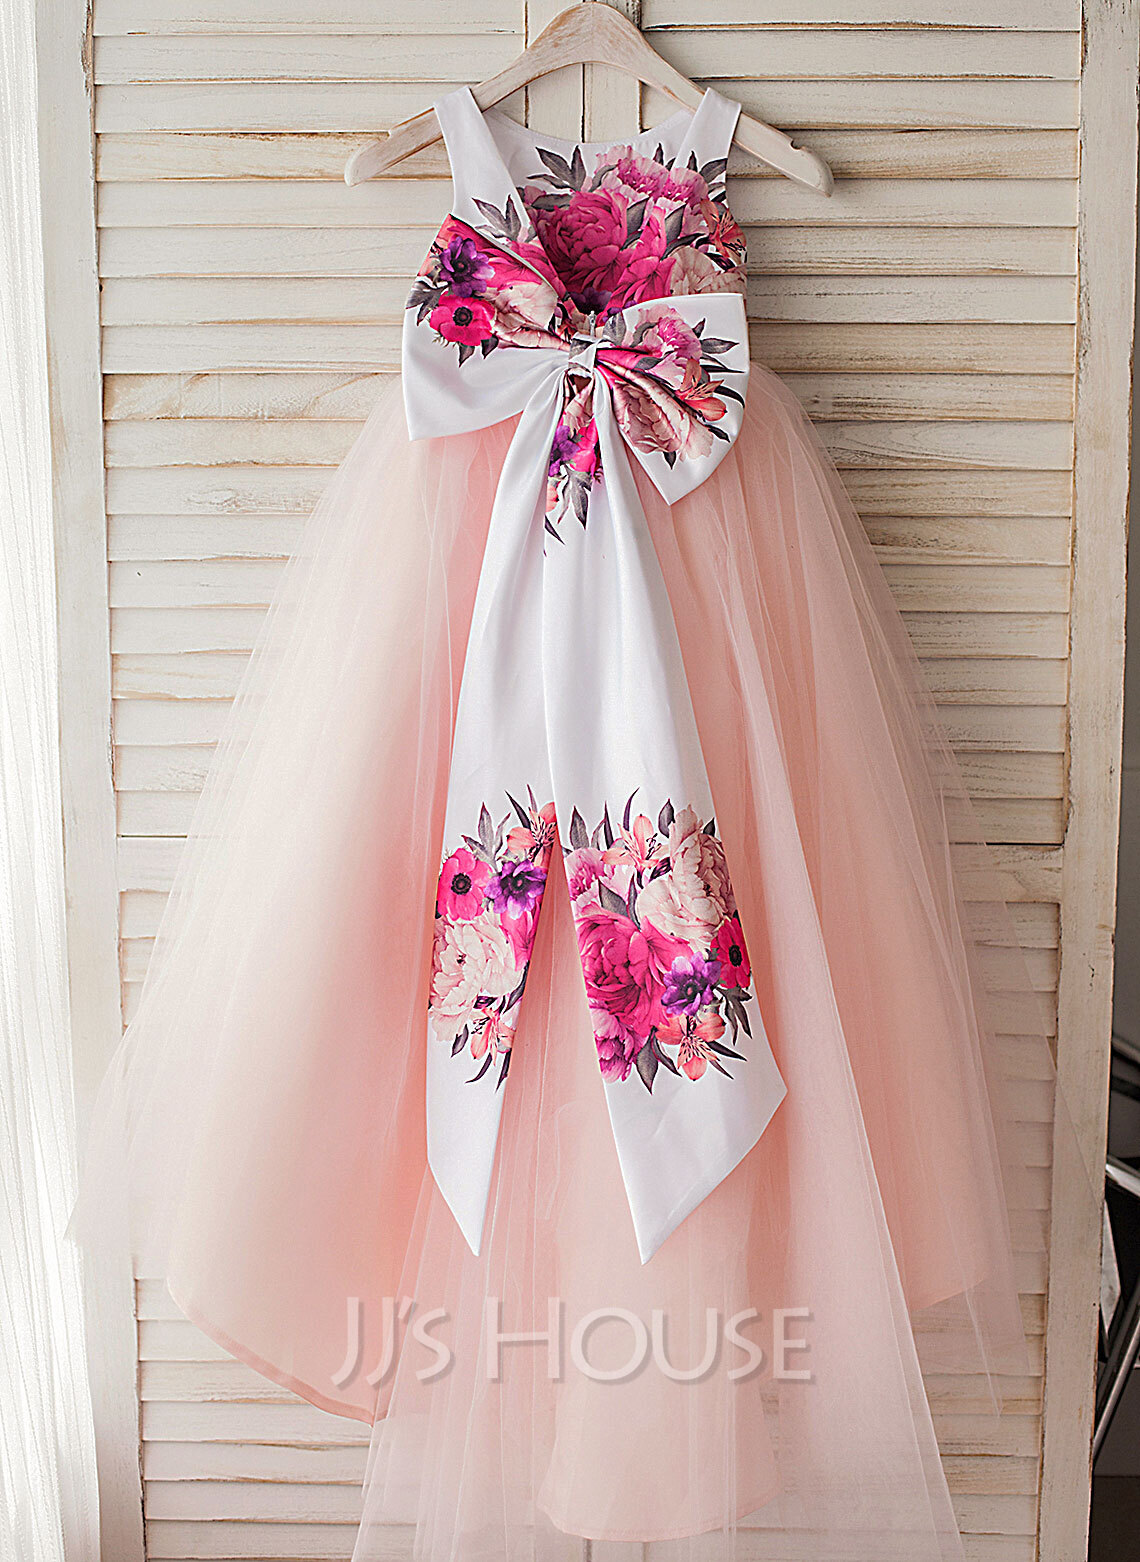 2d4e2f6925a A-Line Princess Asymmetrical Flower Girl Dress - Satin Tulle Sleeveless  Scoop Neck. Loading zoom